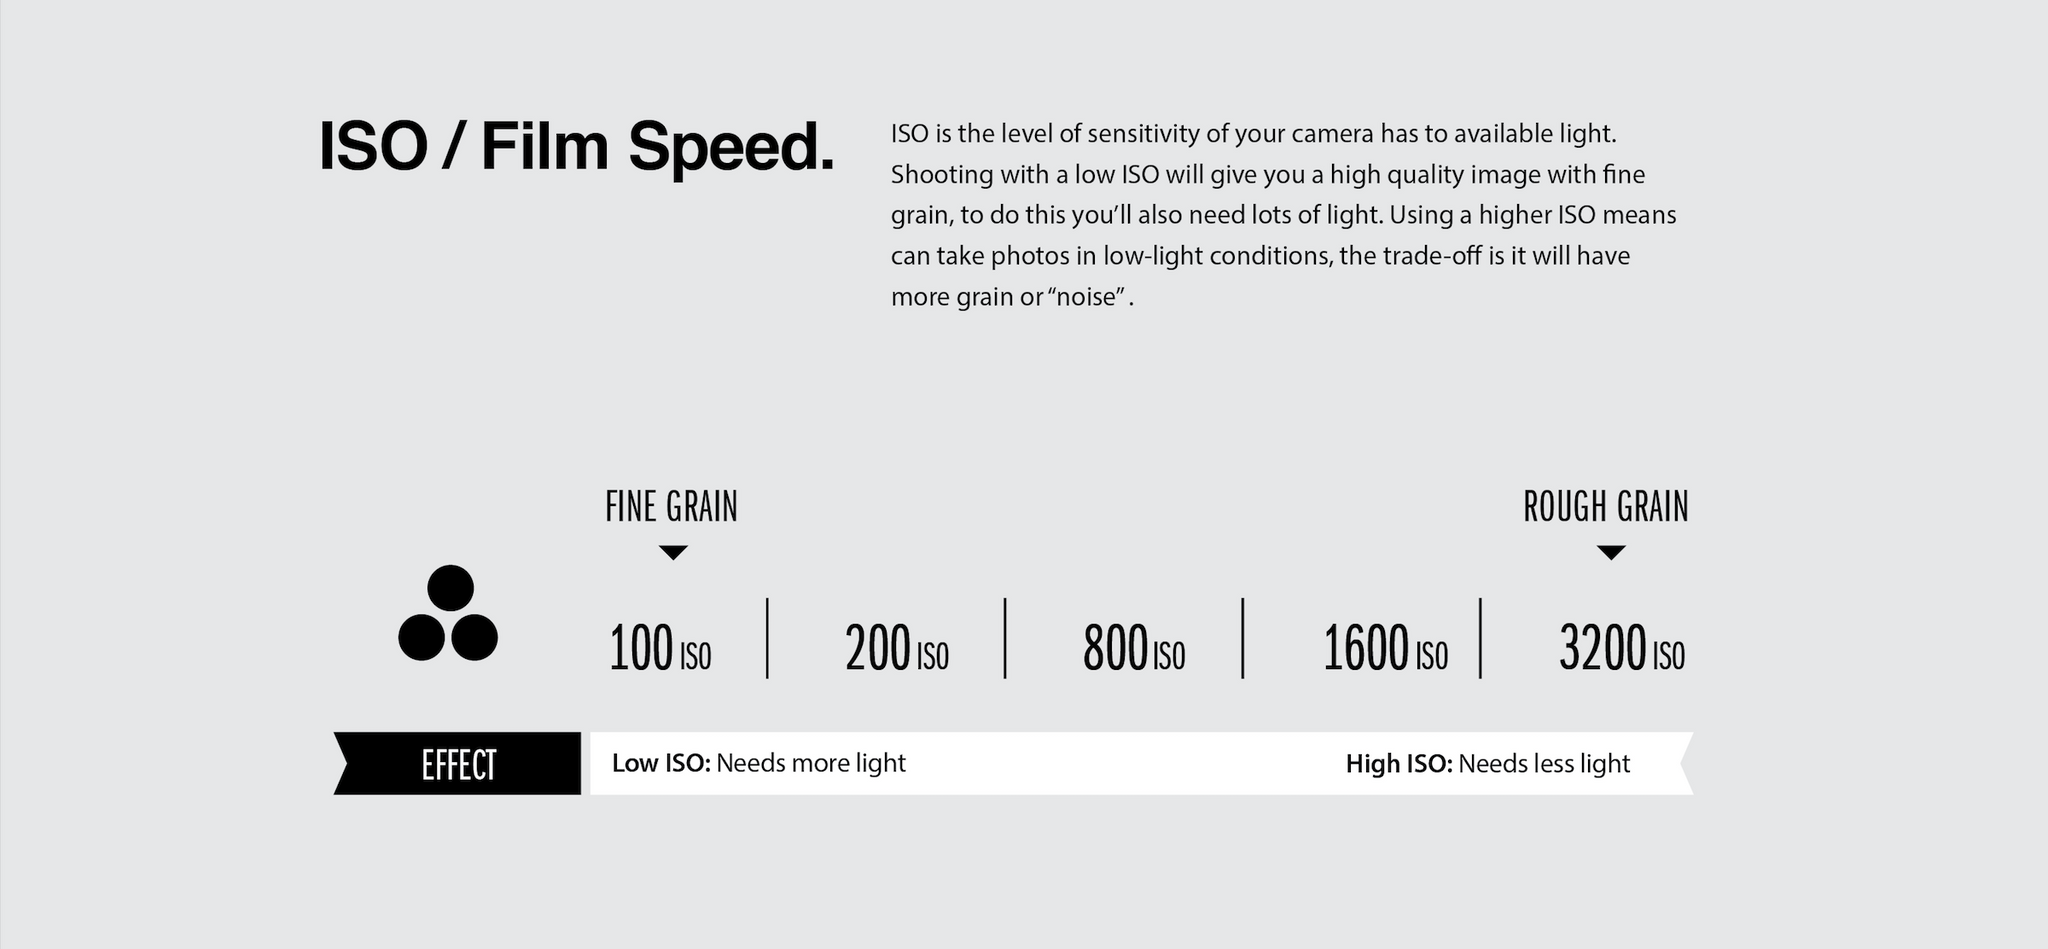 How ISO Film Speed works